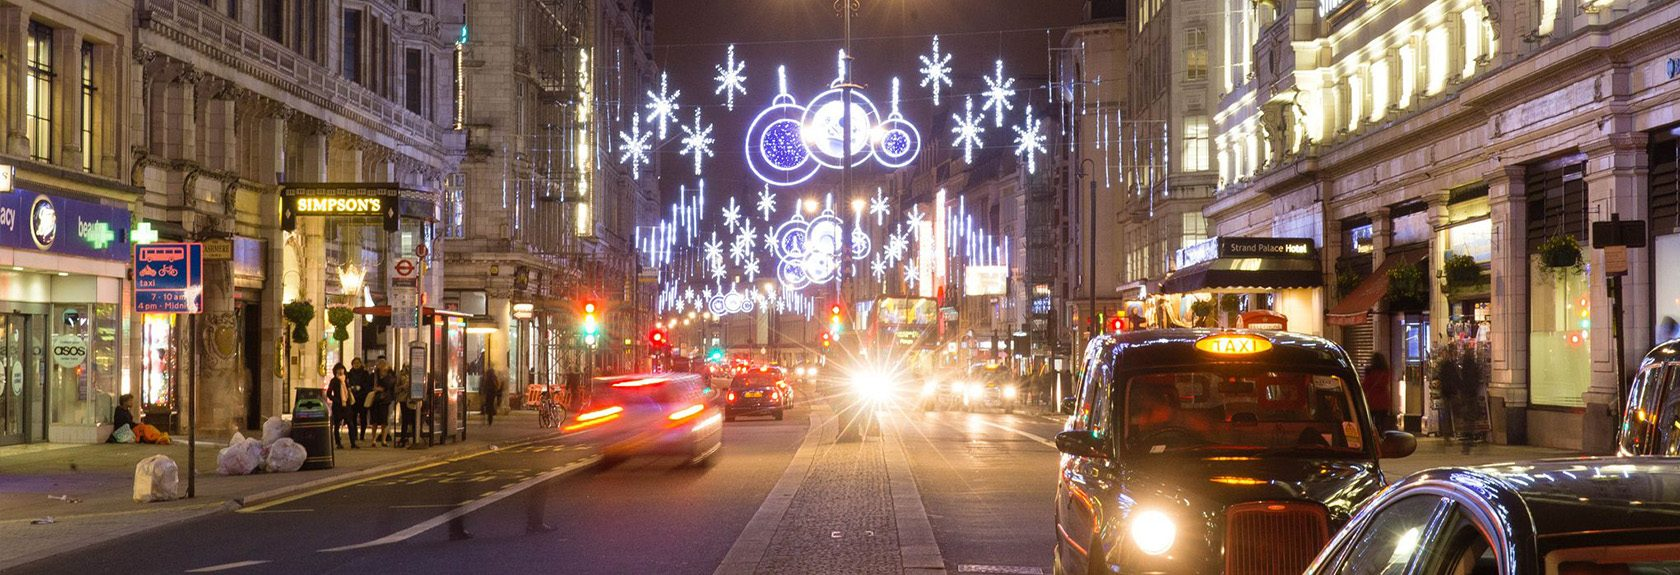 London Christmas Lights Tour